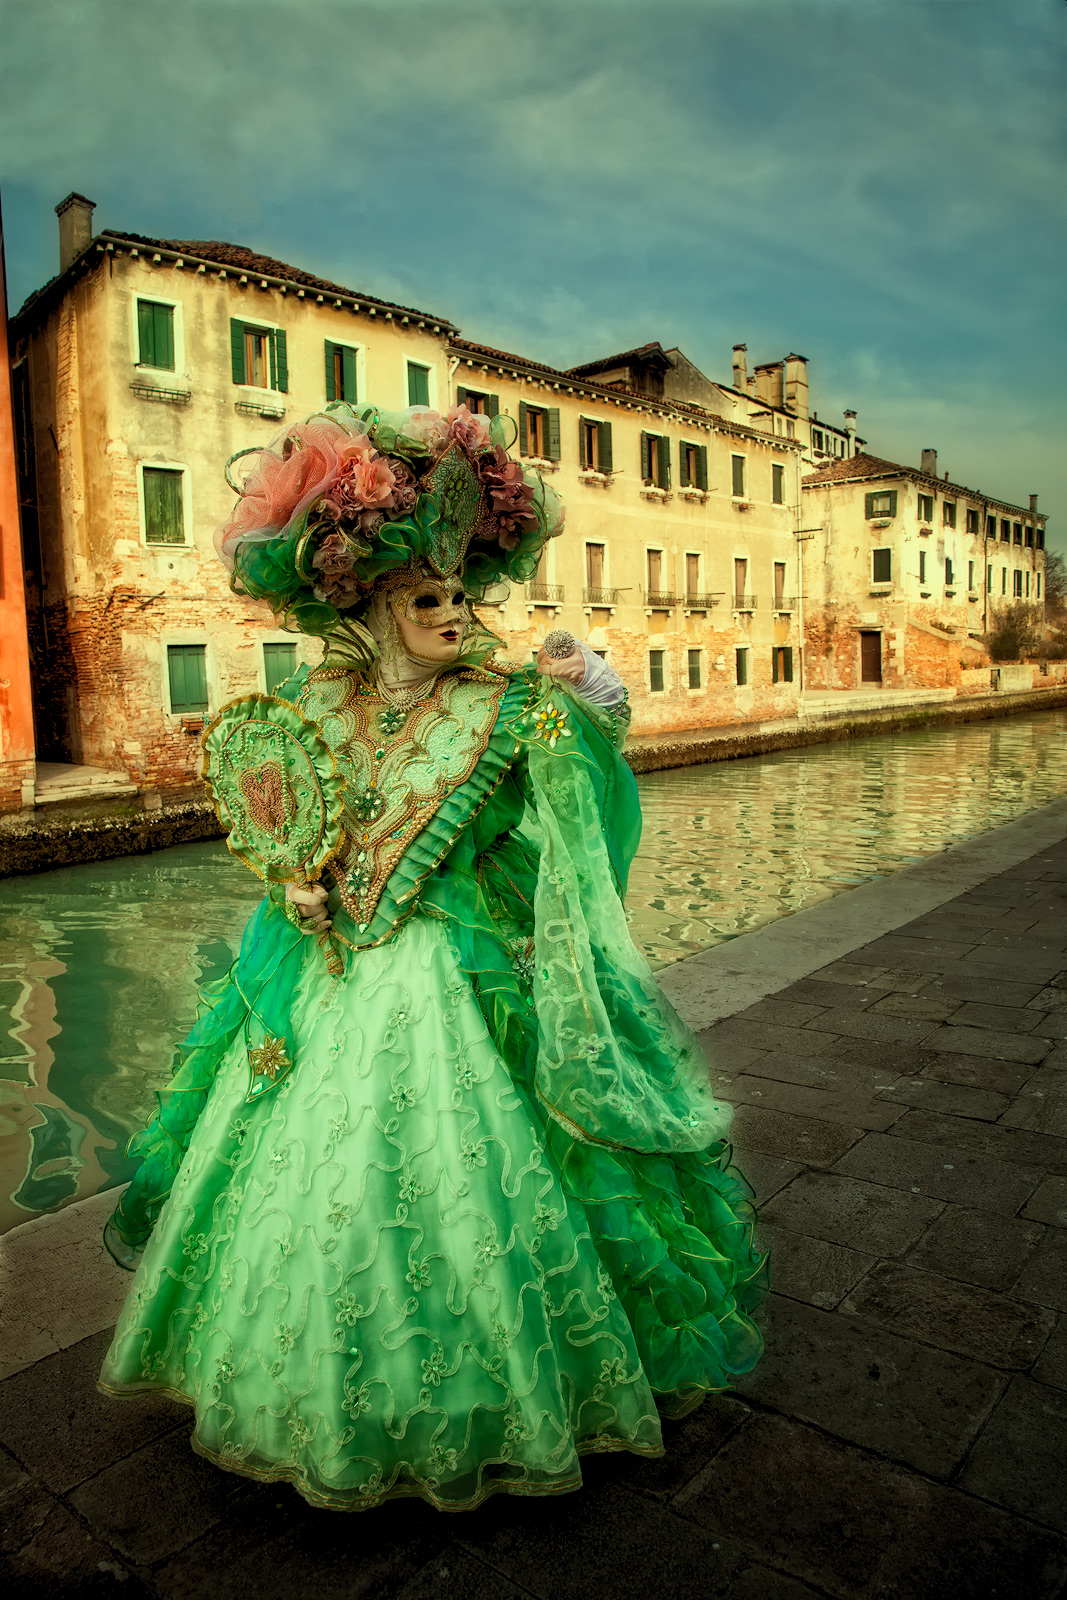 burano, burano island, canal, carnival, celebration, colorful, costume, europe, green, italy, mask, party, venice, vertical, photo